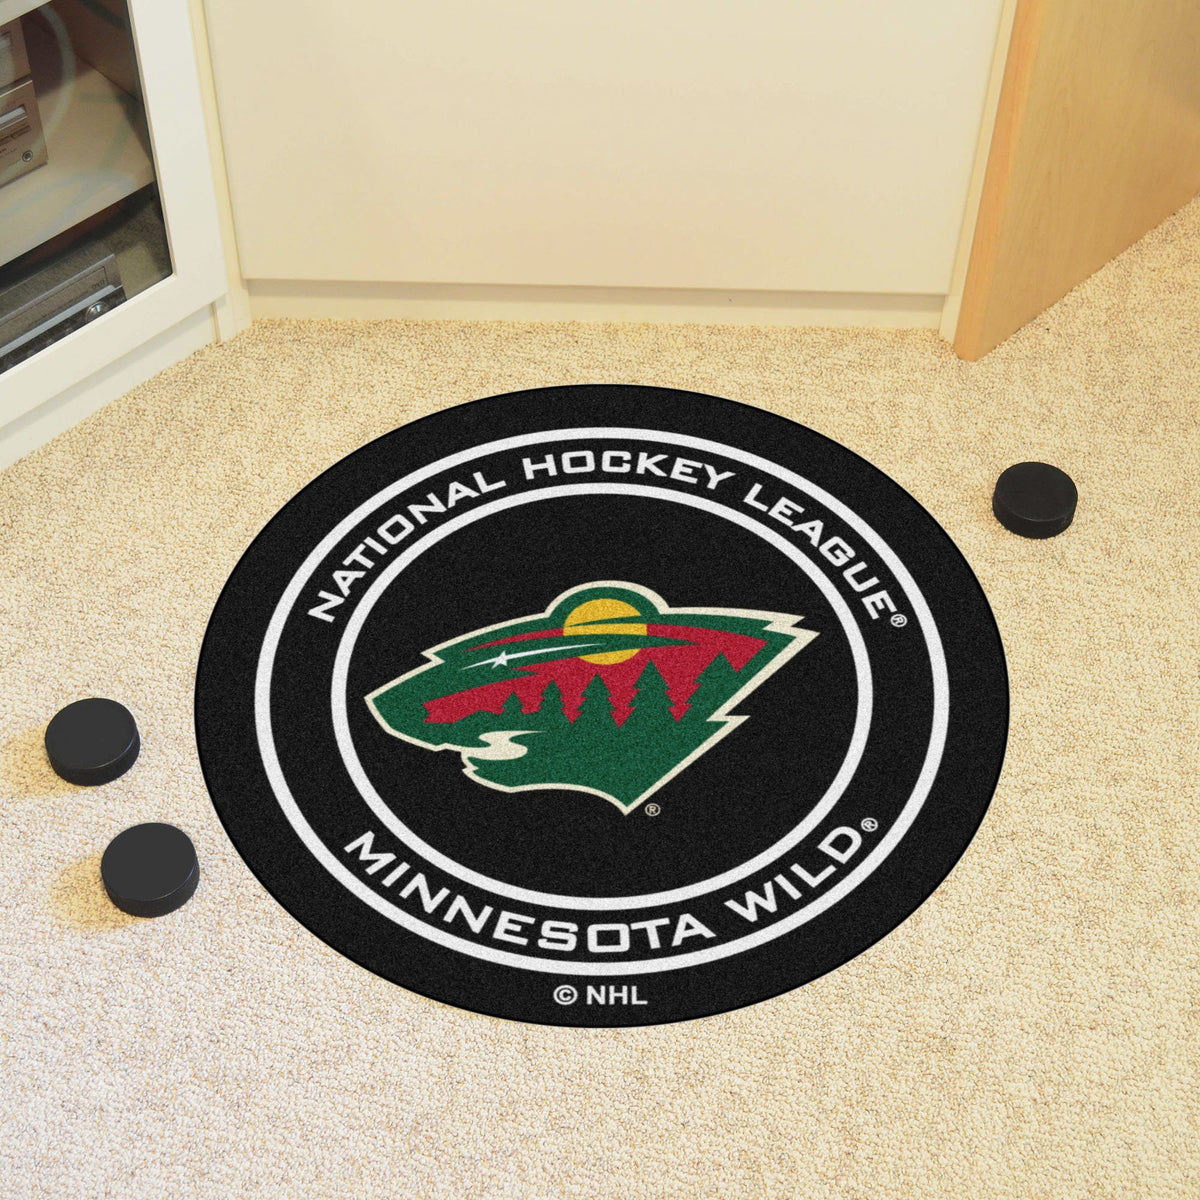 NHL Hockey Puck Mat NHL Hockey Puck Mat Fan Mats Minnesota Wild